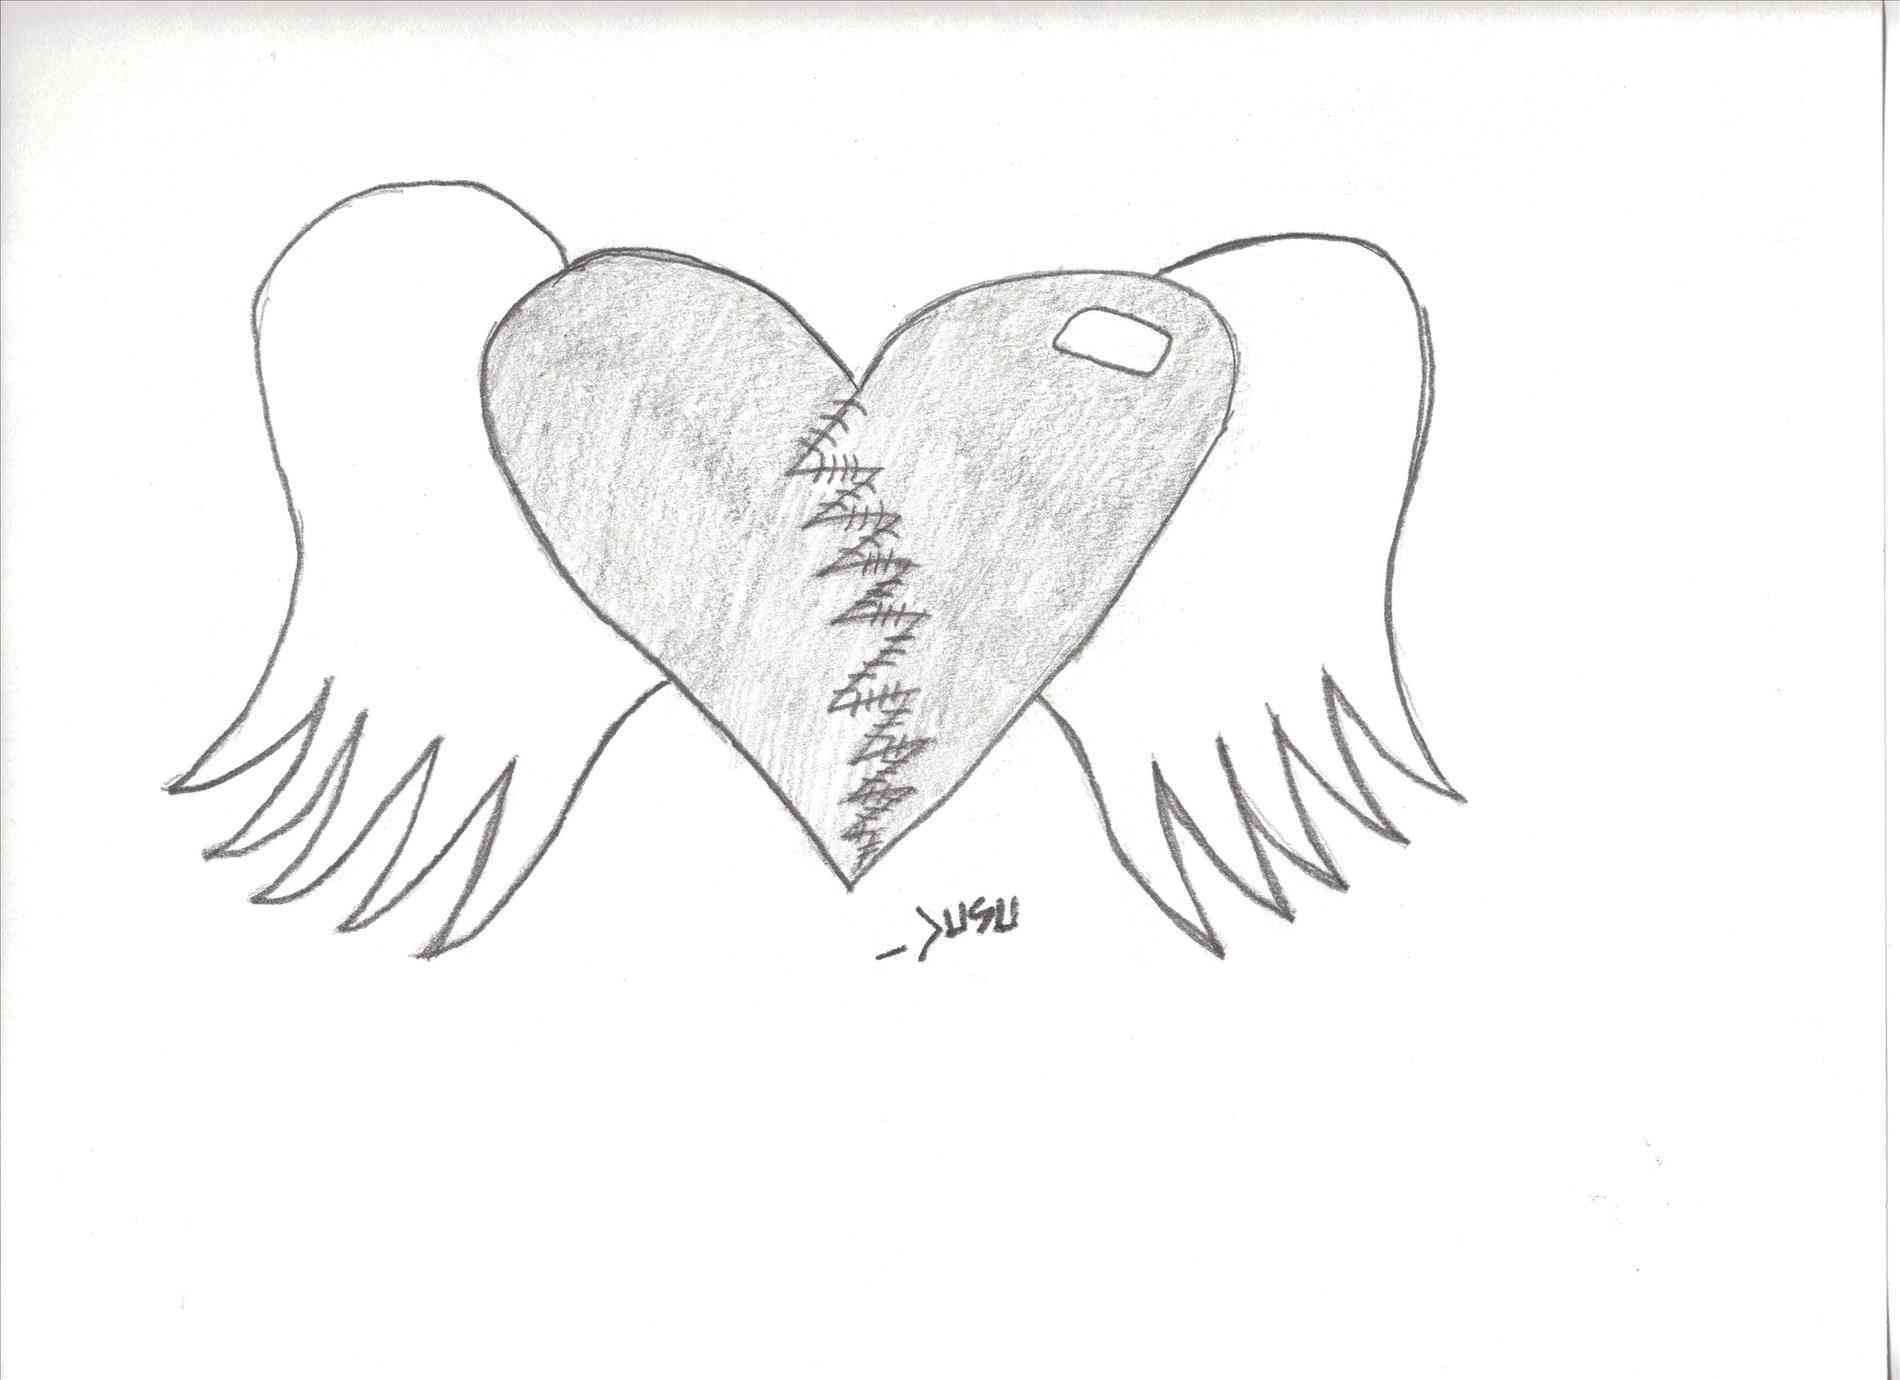 1900x1380 Graffiti Heart And Wing Version Of Heart W Wings Drawing